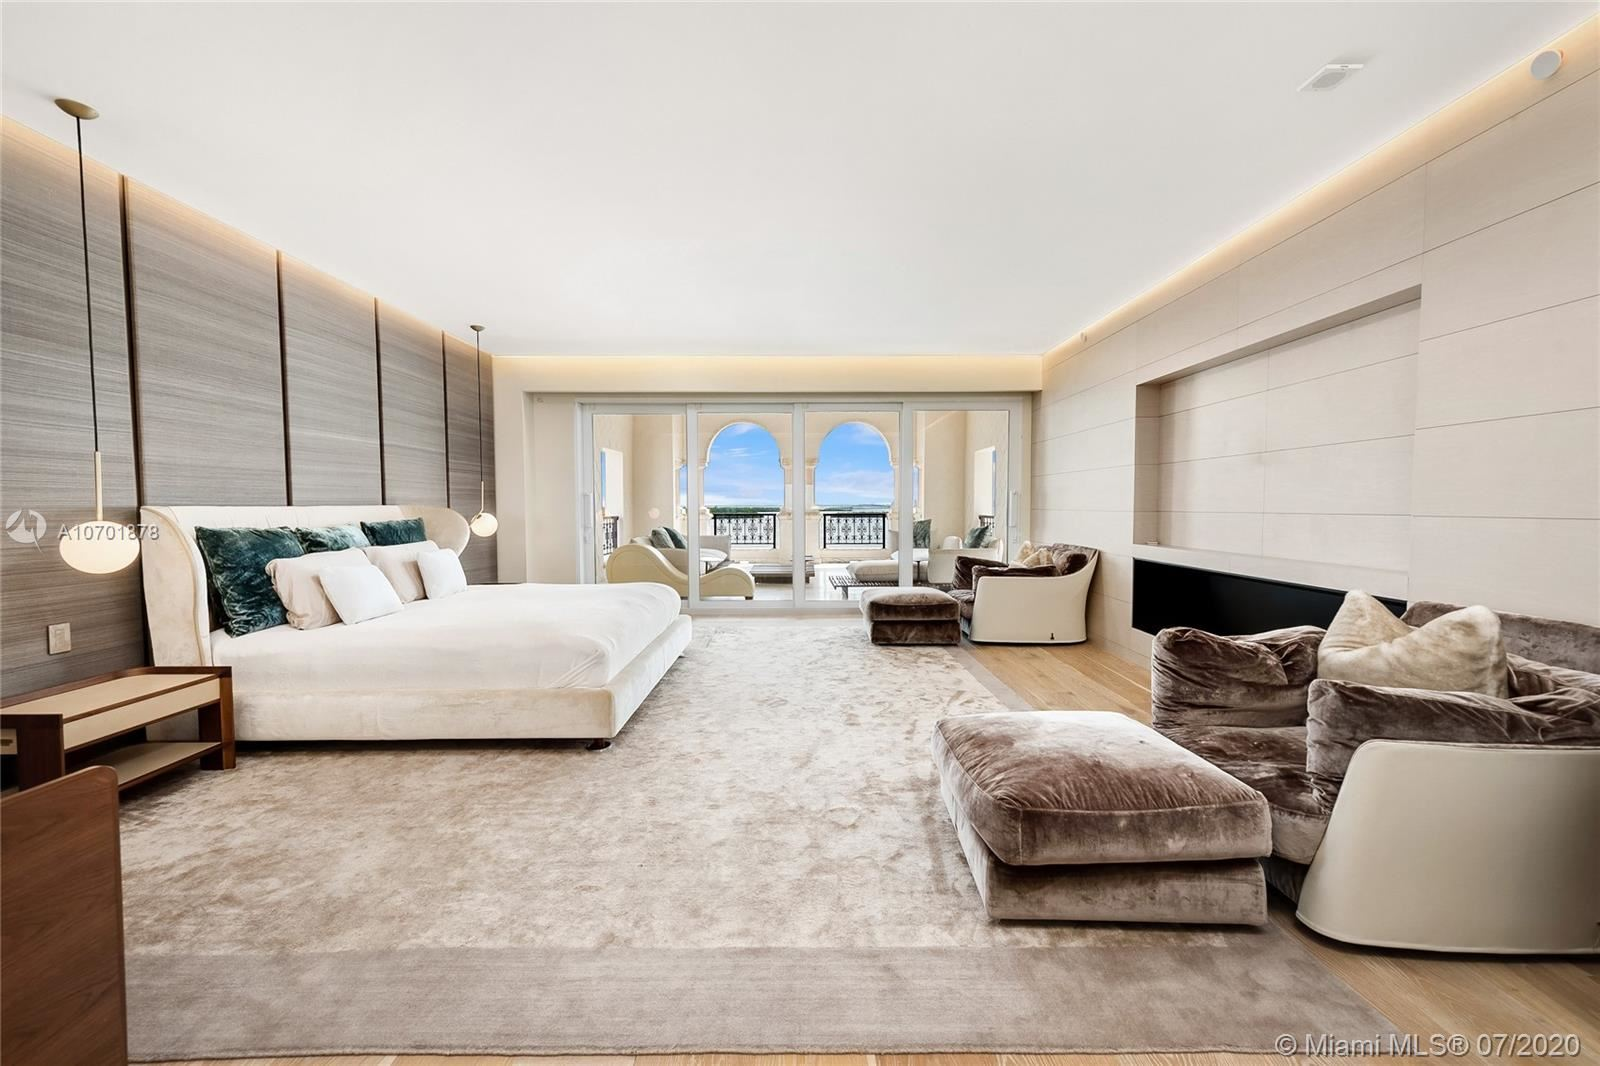 Photo 28 of Listing MLS a10701878 in 5292 Fisher Island Dr #5292 Miami FL 33109